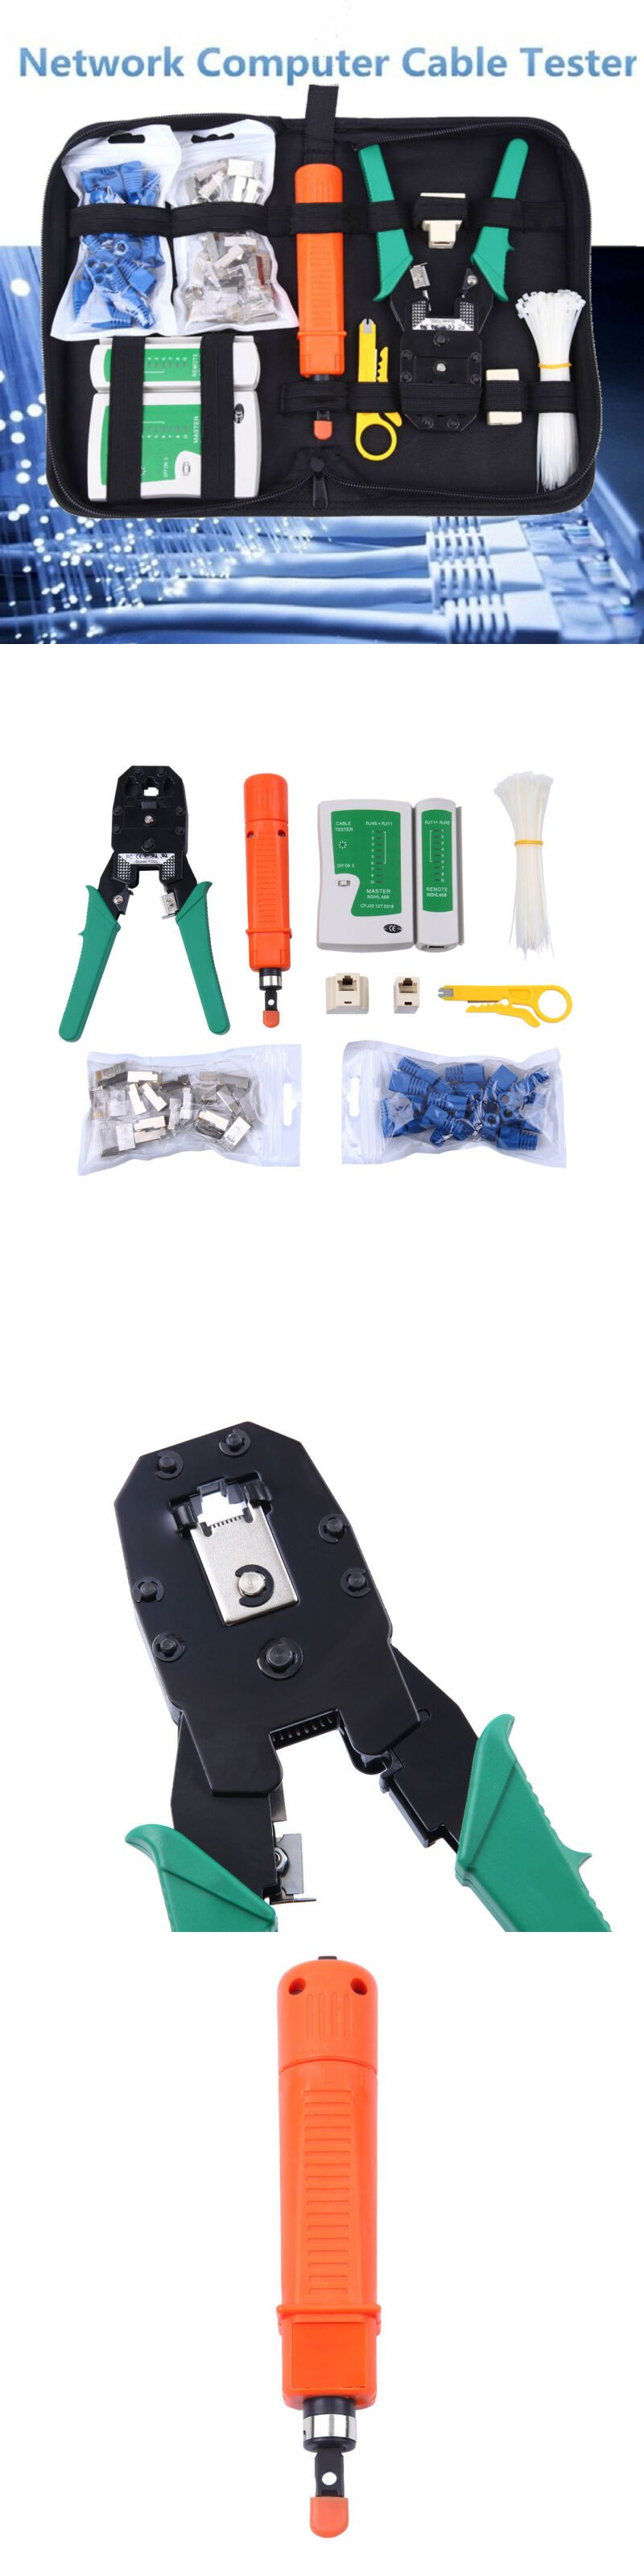 Pin On Cabling Tools 51169